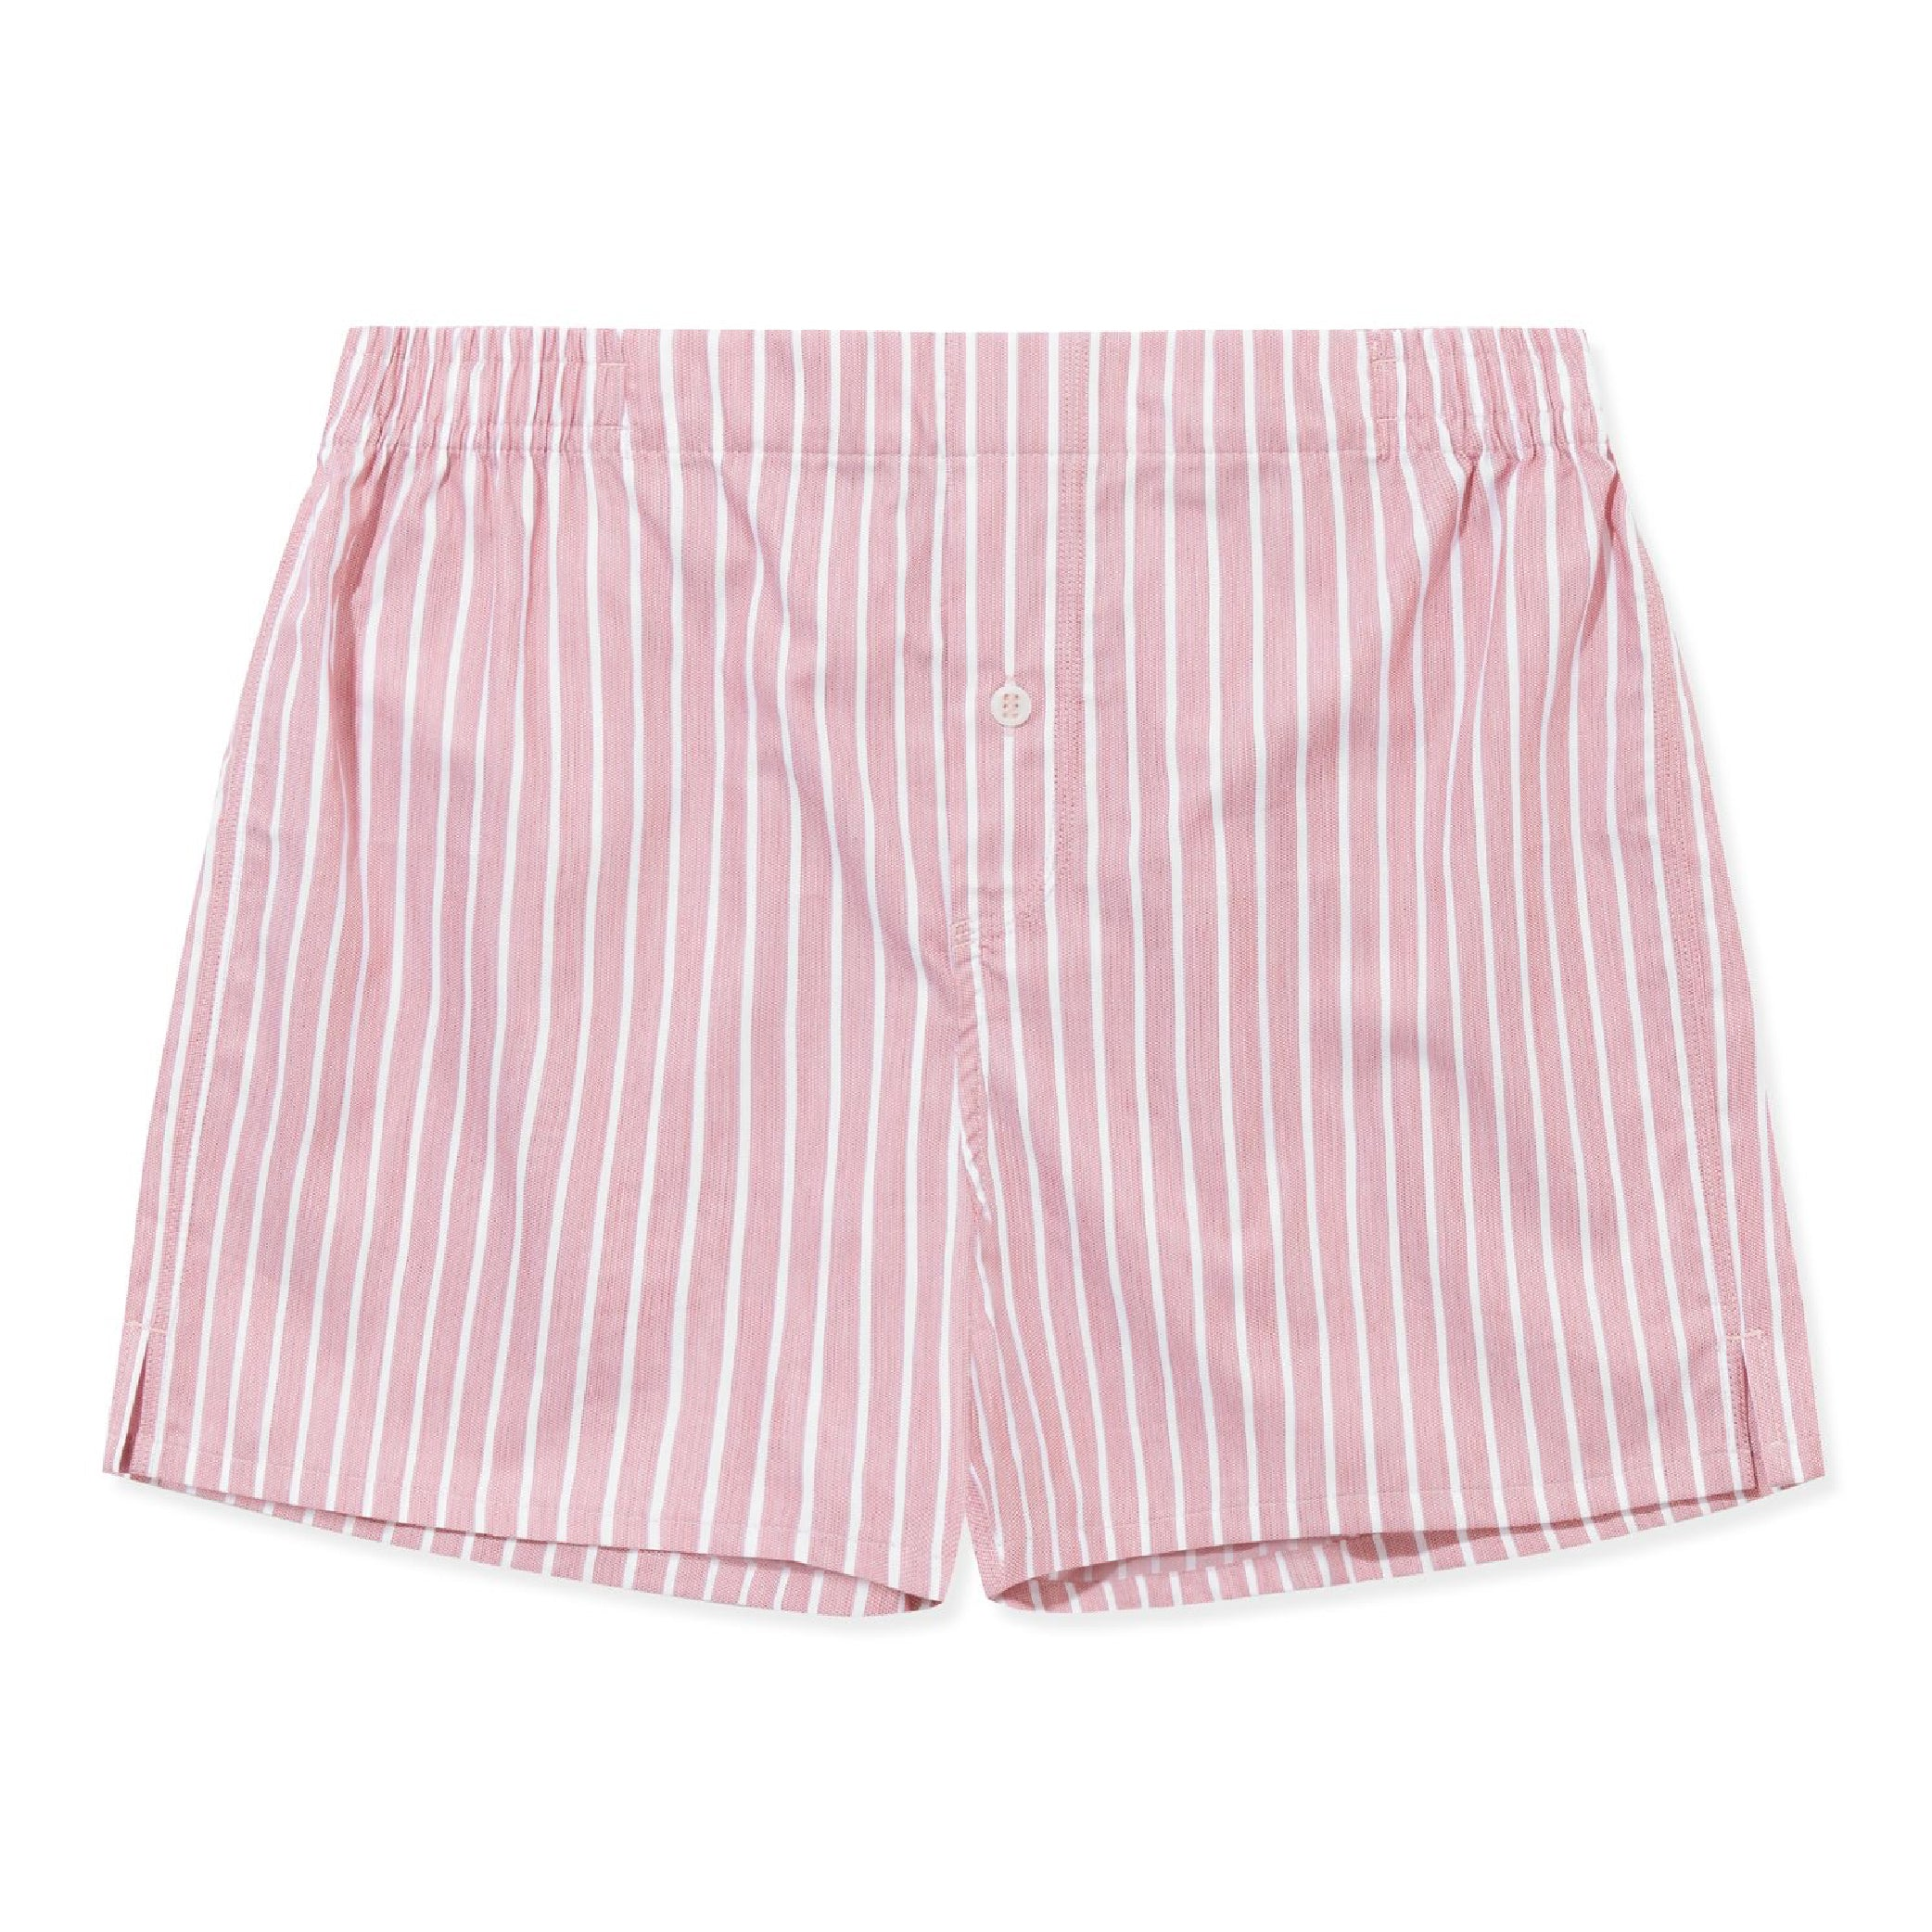 3 Pack Boxer Short - Rose, Classic White, Pink Stripe